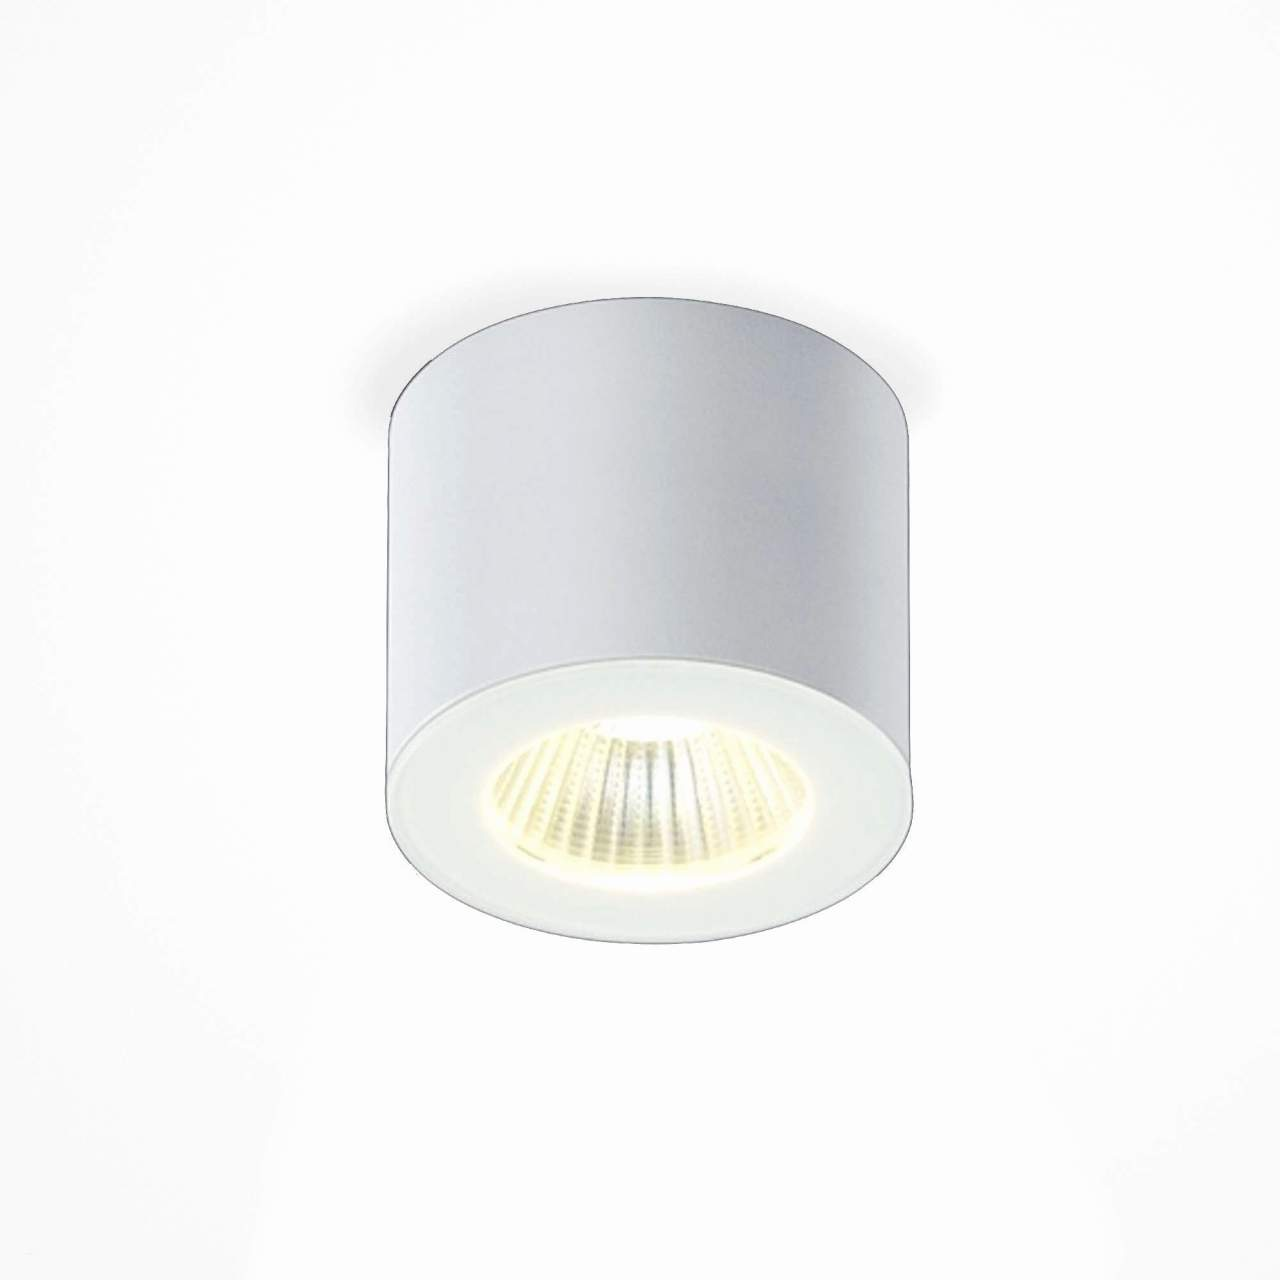 luxo lamp lampen modern design interesting leuchten with lampen modern design durch luxo lamp